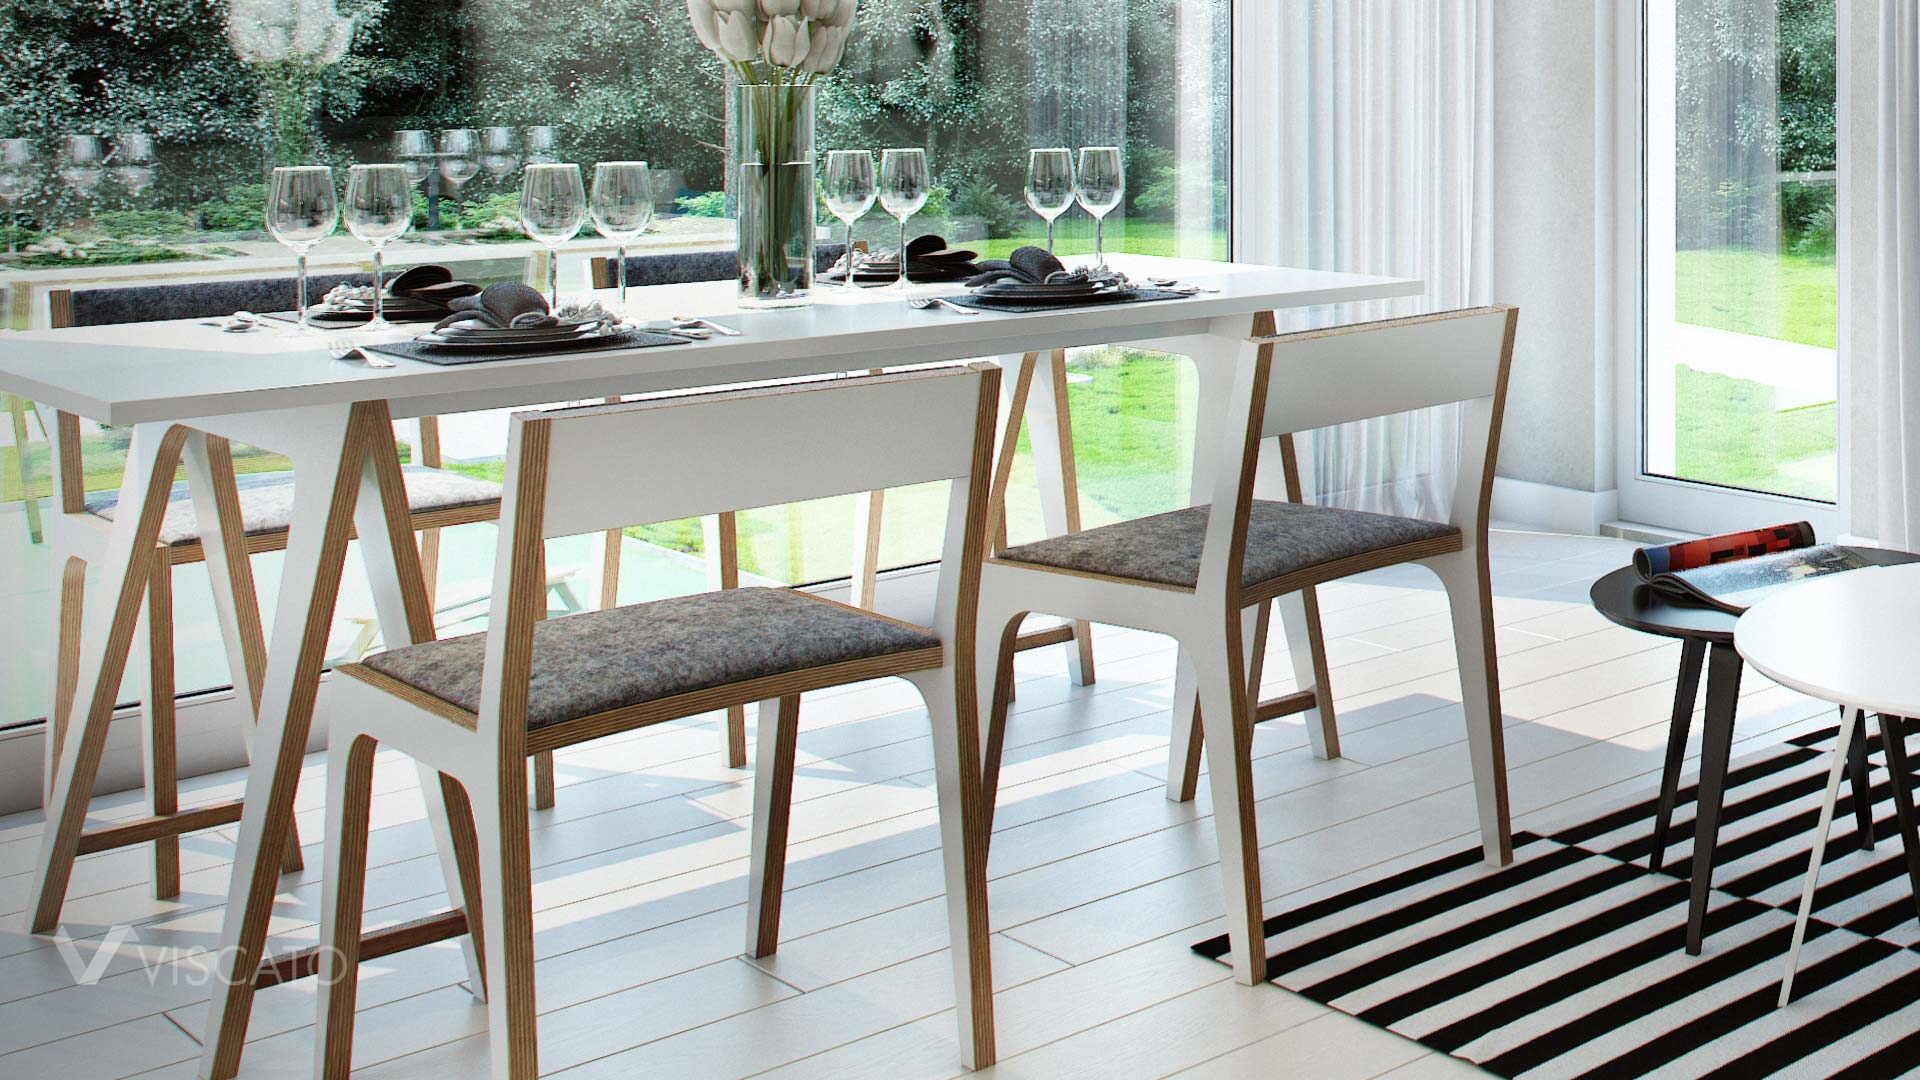 Interior 3d Visualization of modern scandinavian appartment- closeup on table with chairs and white floor